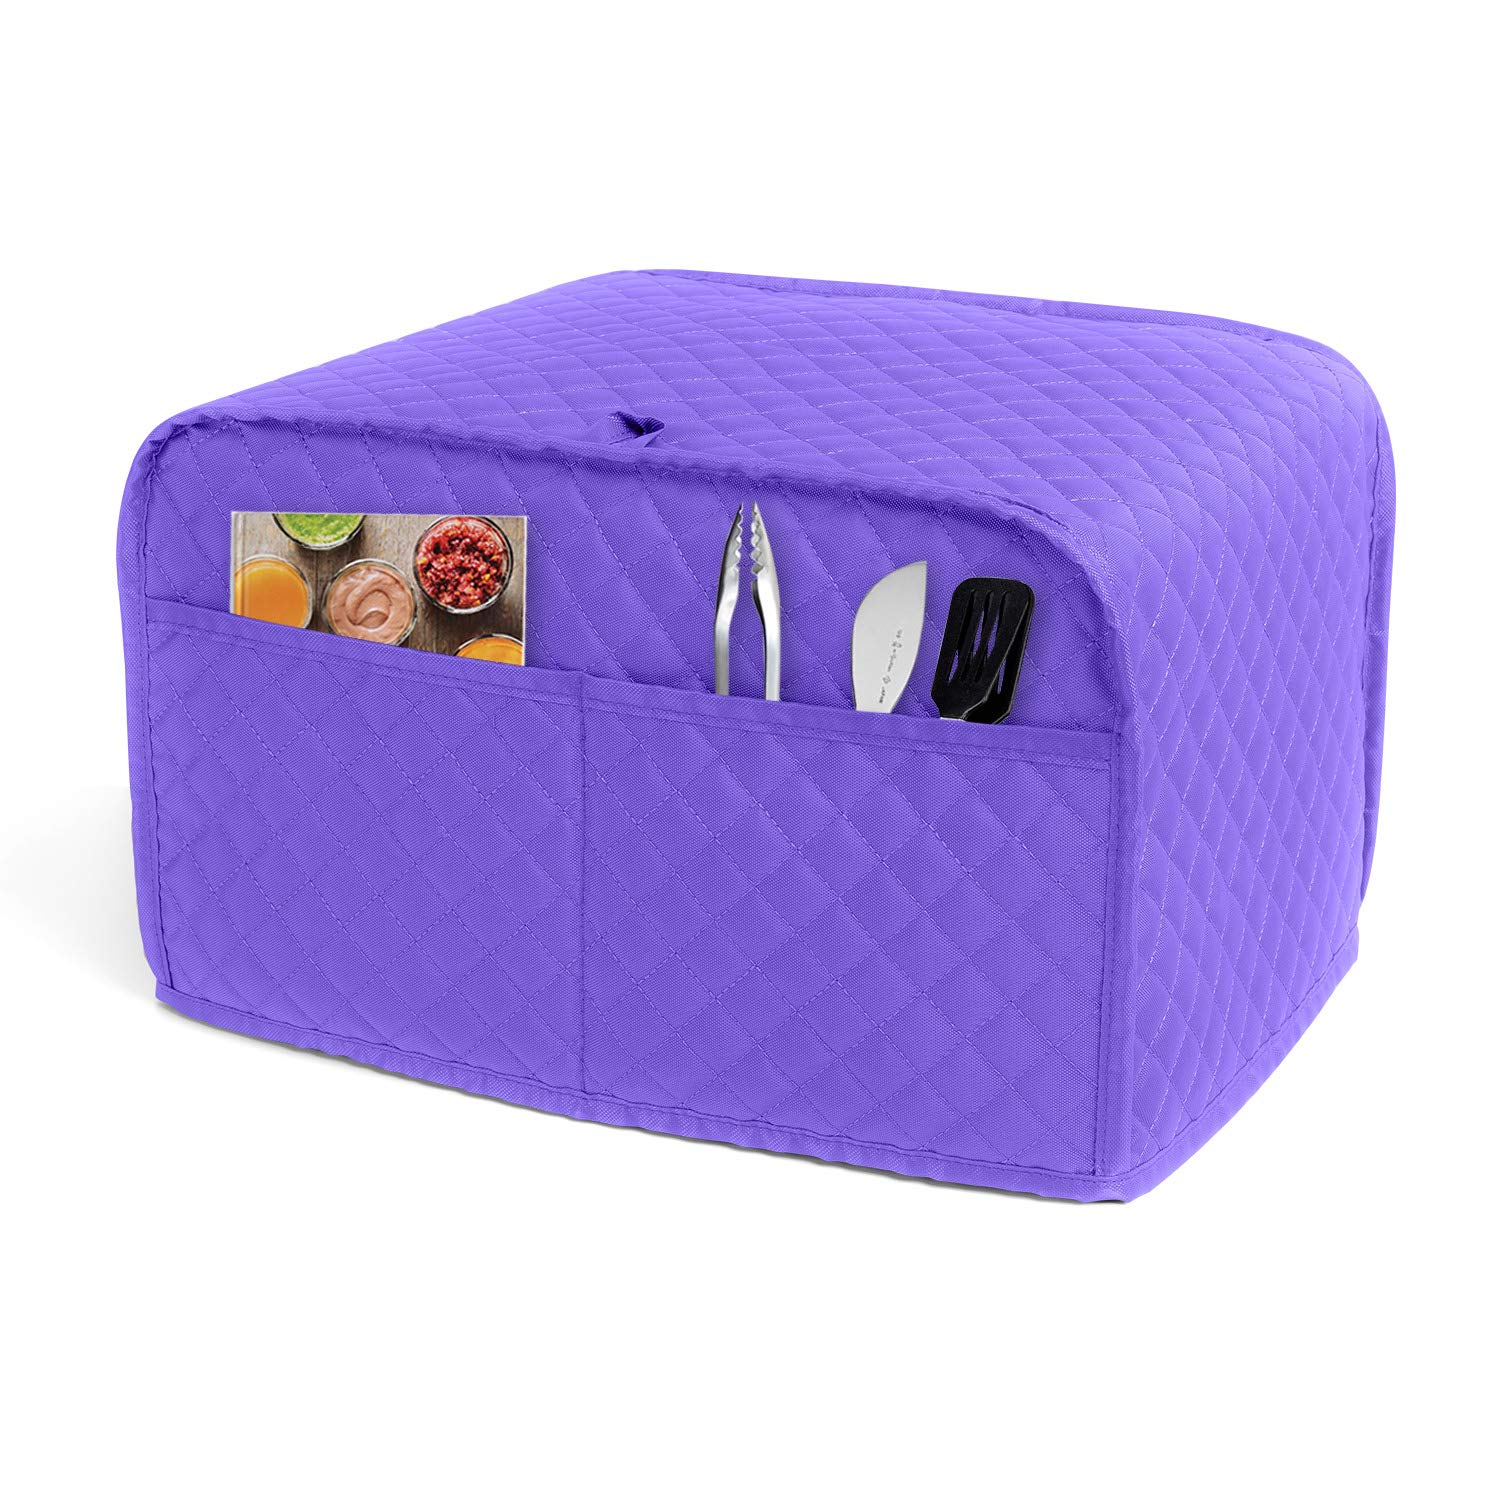 LUXJA 4 Slice Toaster Cover (12.5 x 10 x 8 inches), Toaster Cover with 2 Pockets (Fits for Most Major 4 Slice Toasters), Purple (Quilted Fabric)